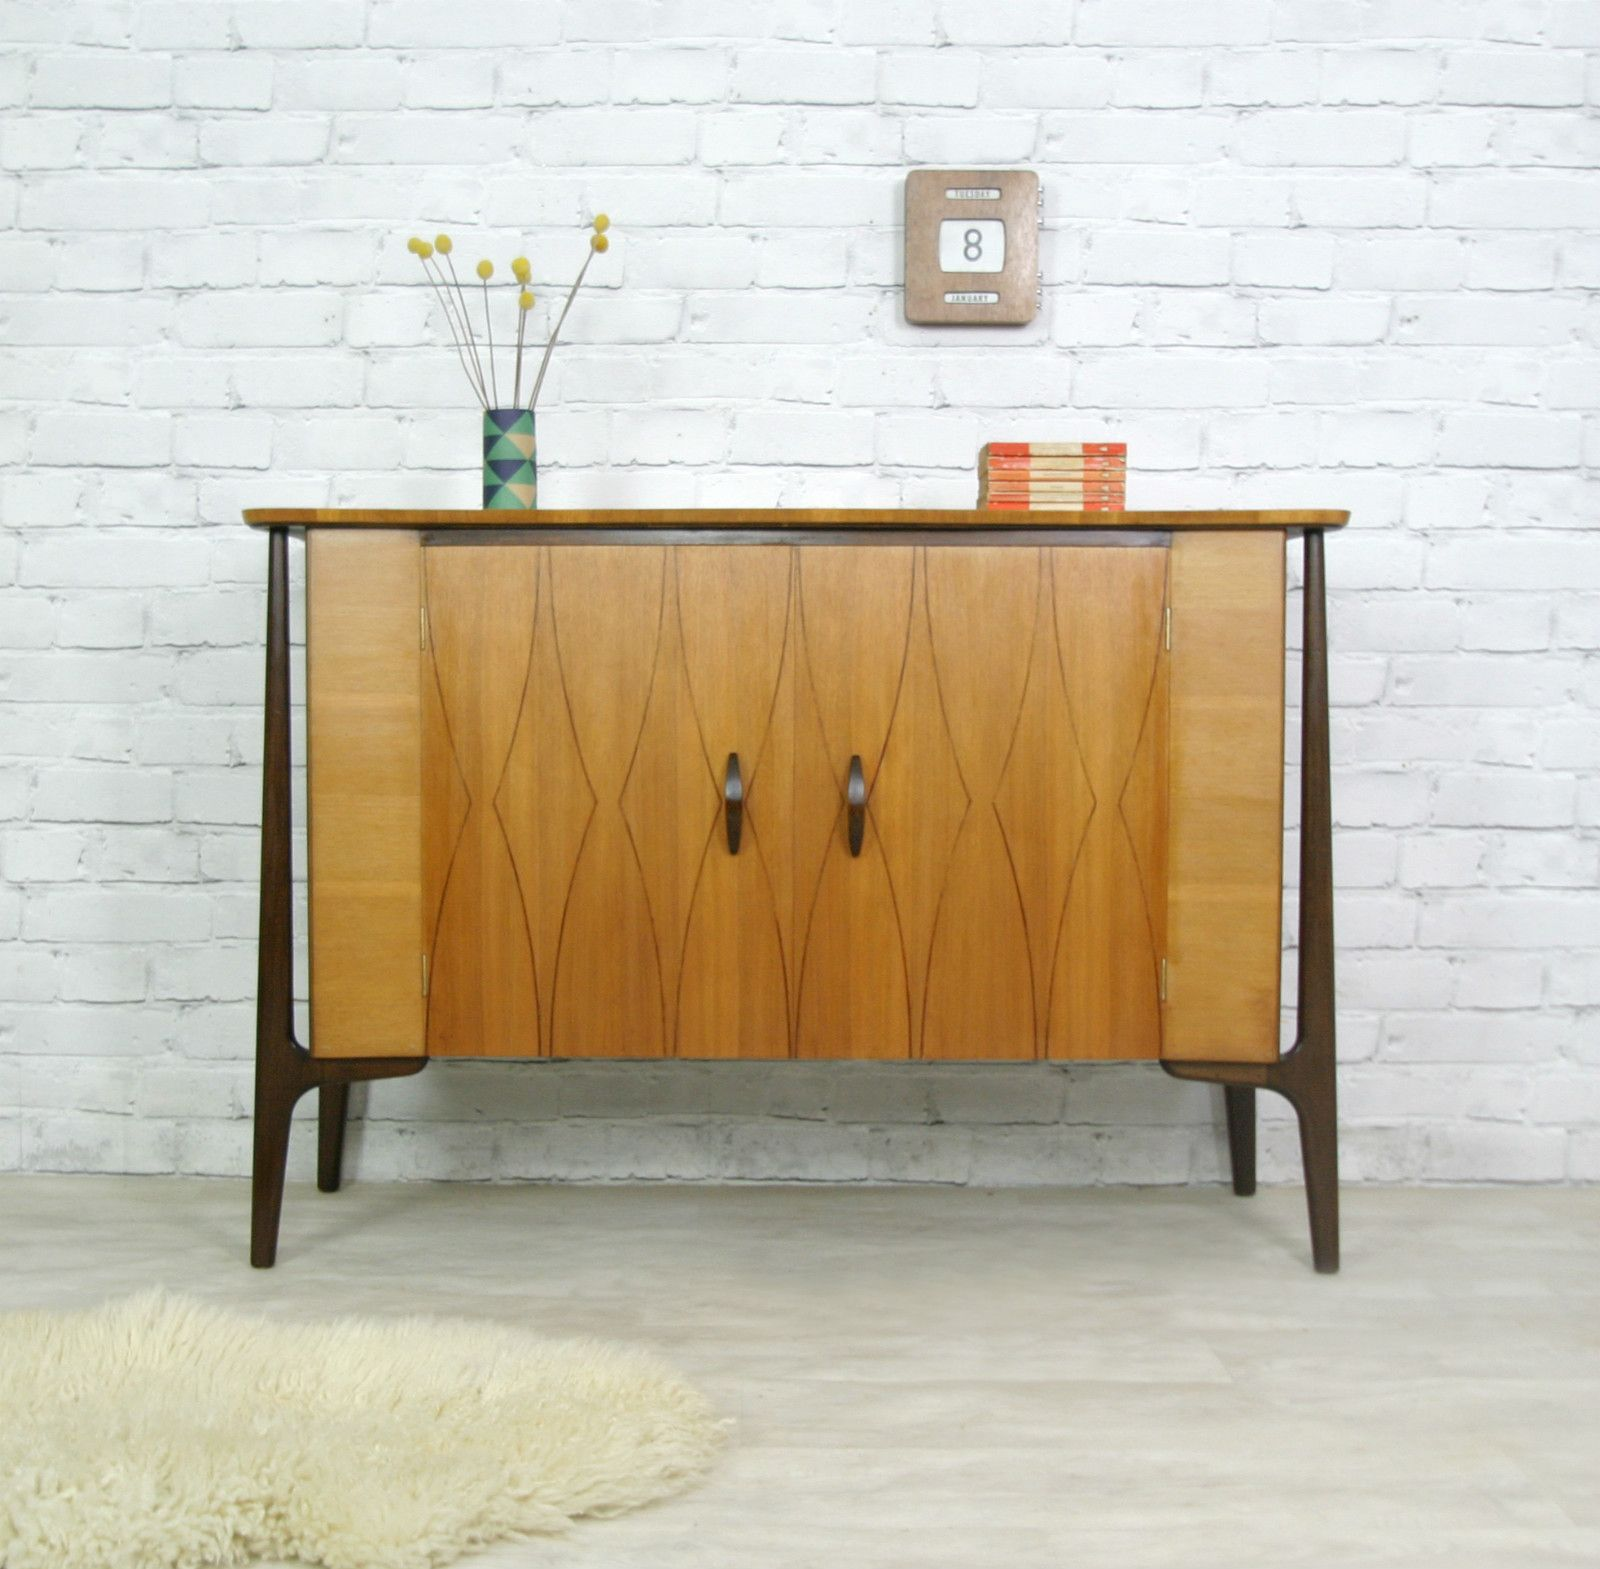 vintage teak sideboard design pinterest m bel furniture und designs. Black Bedroom Furniture Sets. Home Design Ideas